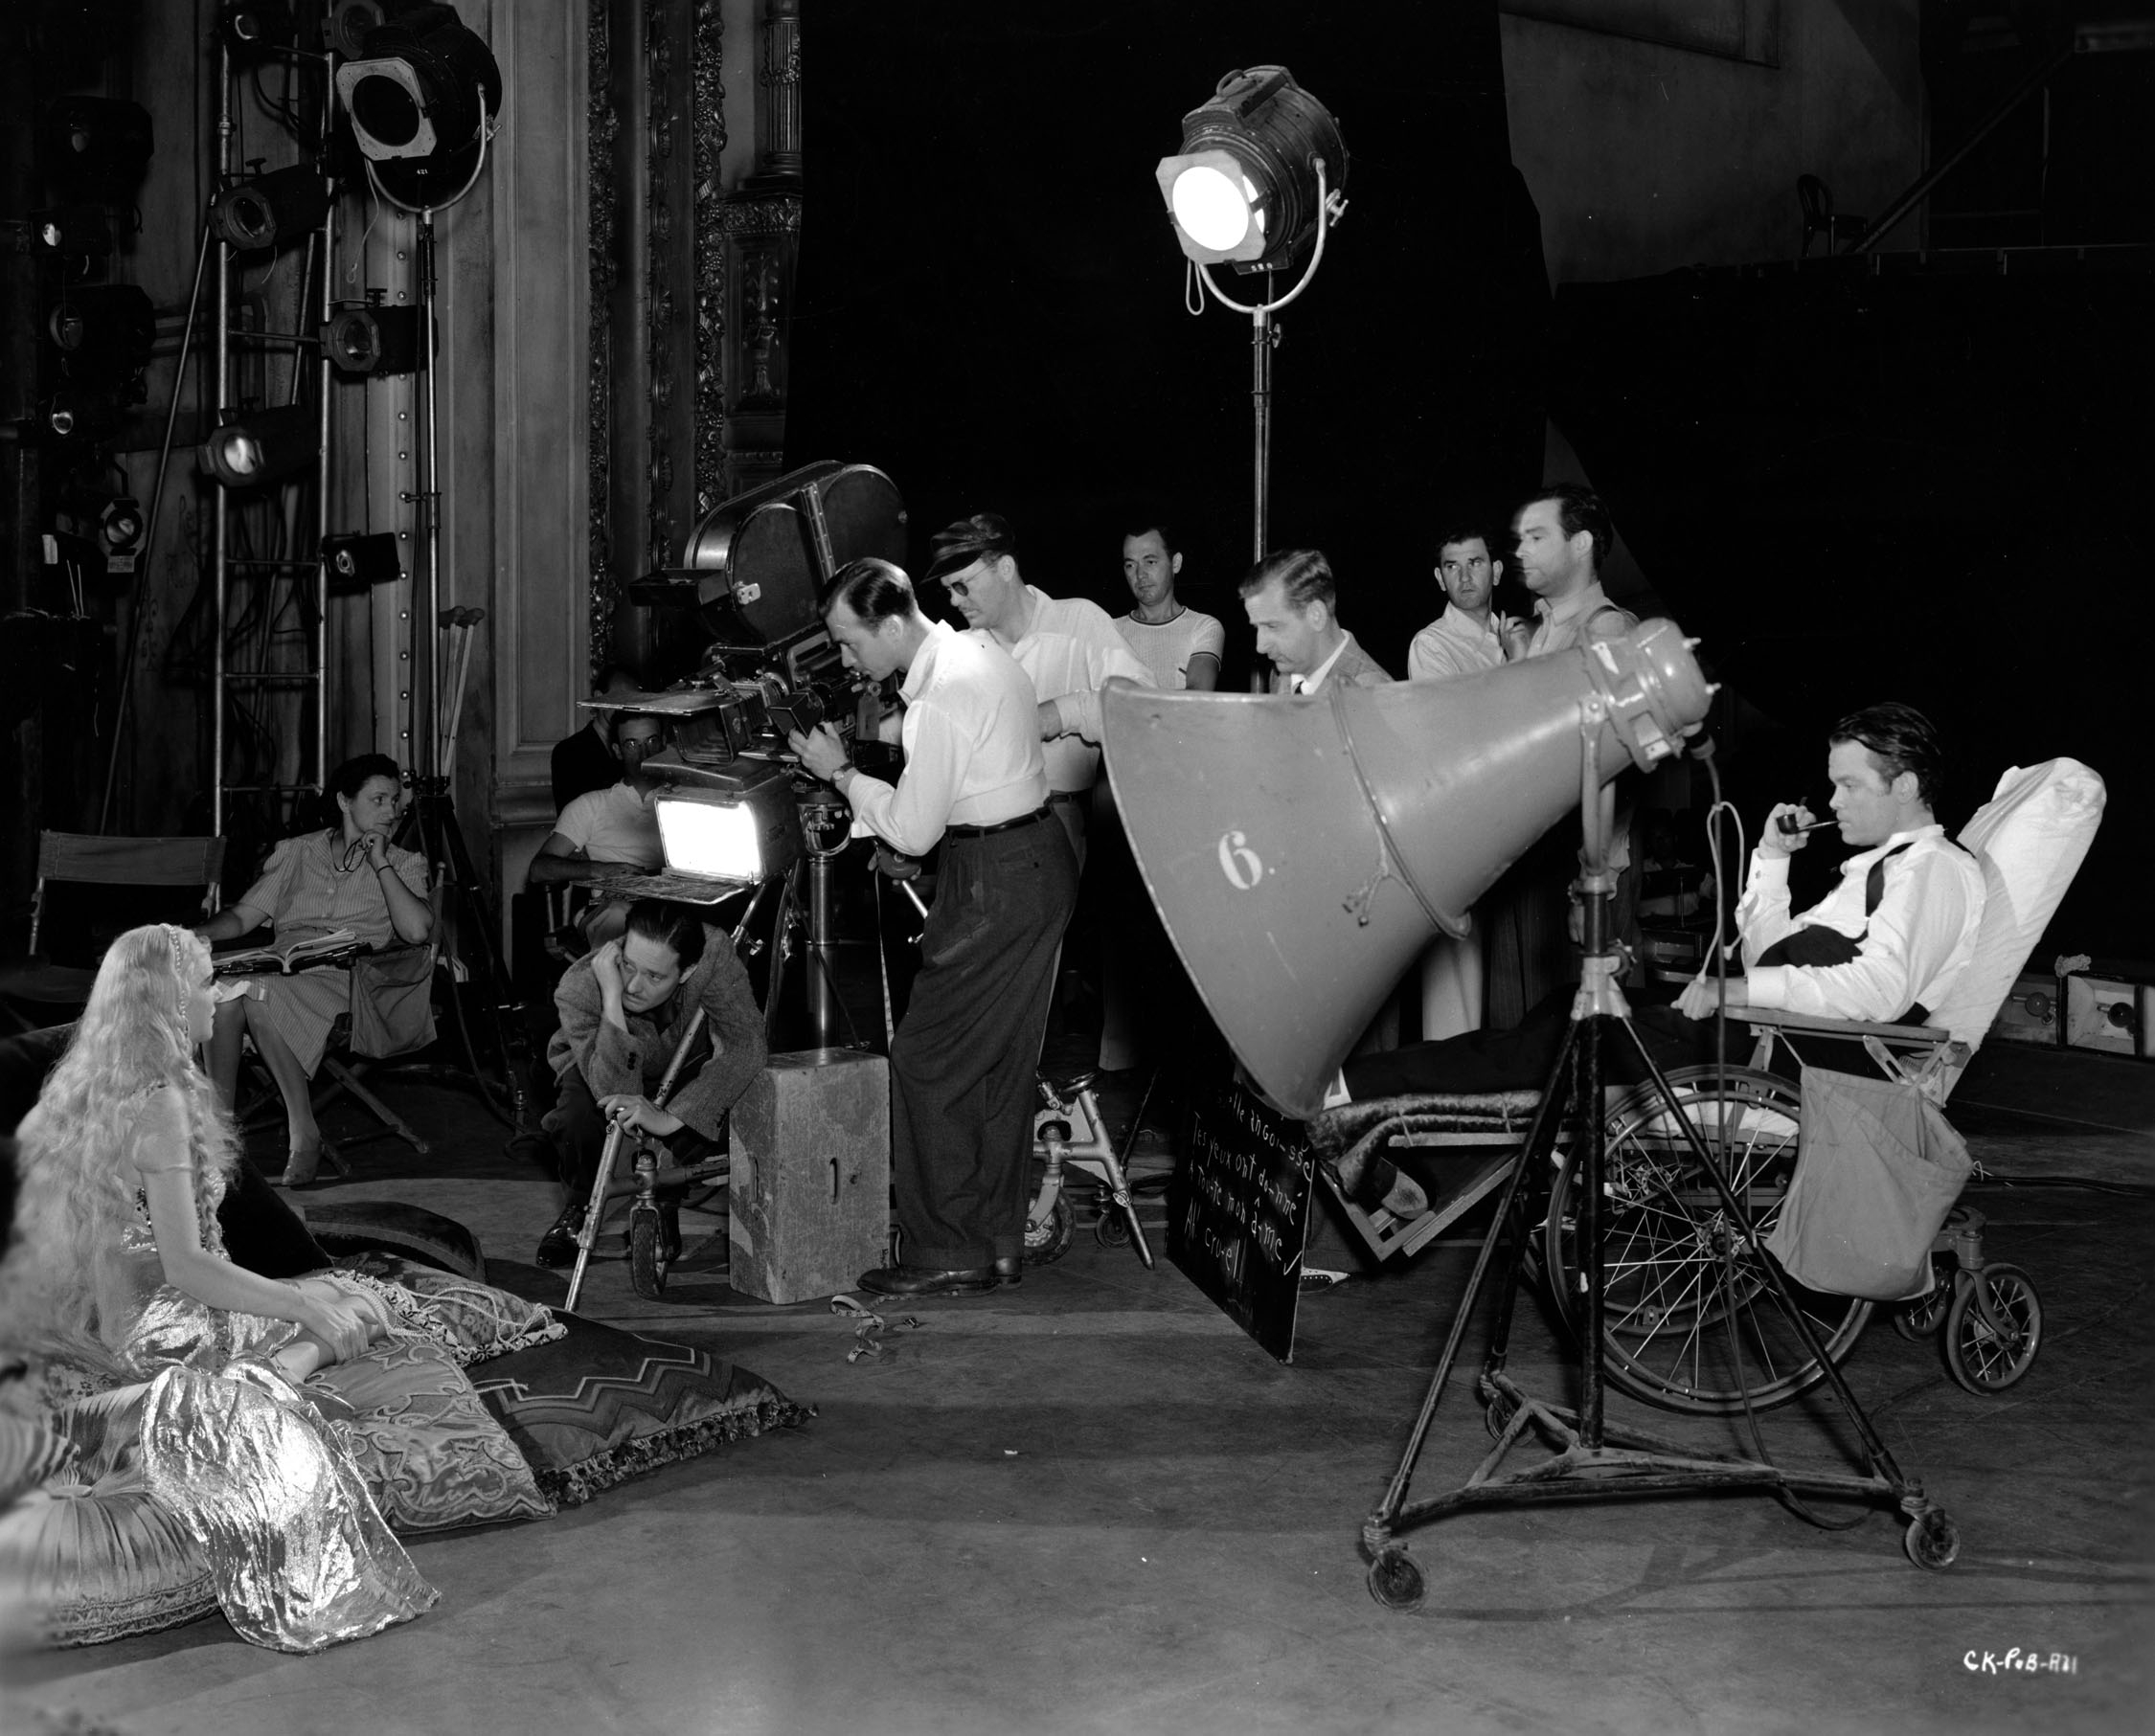 "Production still. Original caption reads: ""ORSON FILMS AN OPERA.  Directing from a wheelchair while an injured ankle heals, Orson Welles, right, is shown here overseeing rehearsals of an opera scene for his initial RKO Radio production, ""Citizen Kane.""  Welles plays the title role in the picture, also produces and directs.  Seated left is Dorothy Comingore, the young 'unknown' Welles chose for a leading role in the film.  Crouched before the camera is Gregg Toland, director of photography, while the balance"